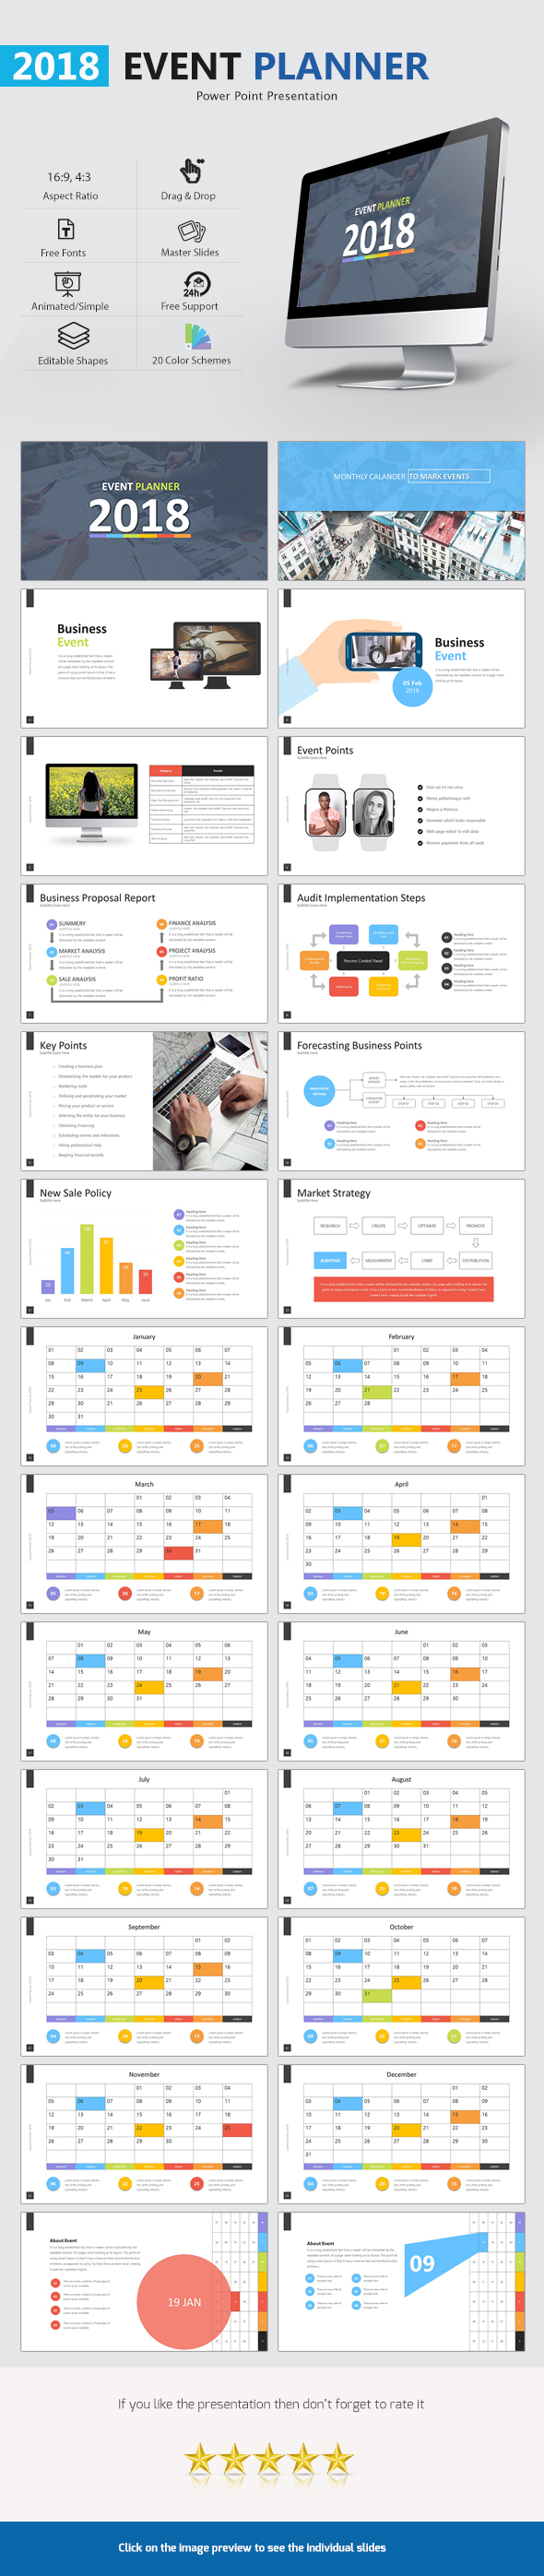 Event Planner 2018 Presentation - Business PowerPoint Templates